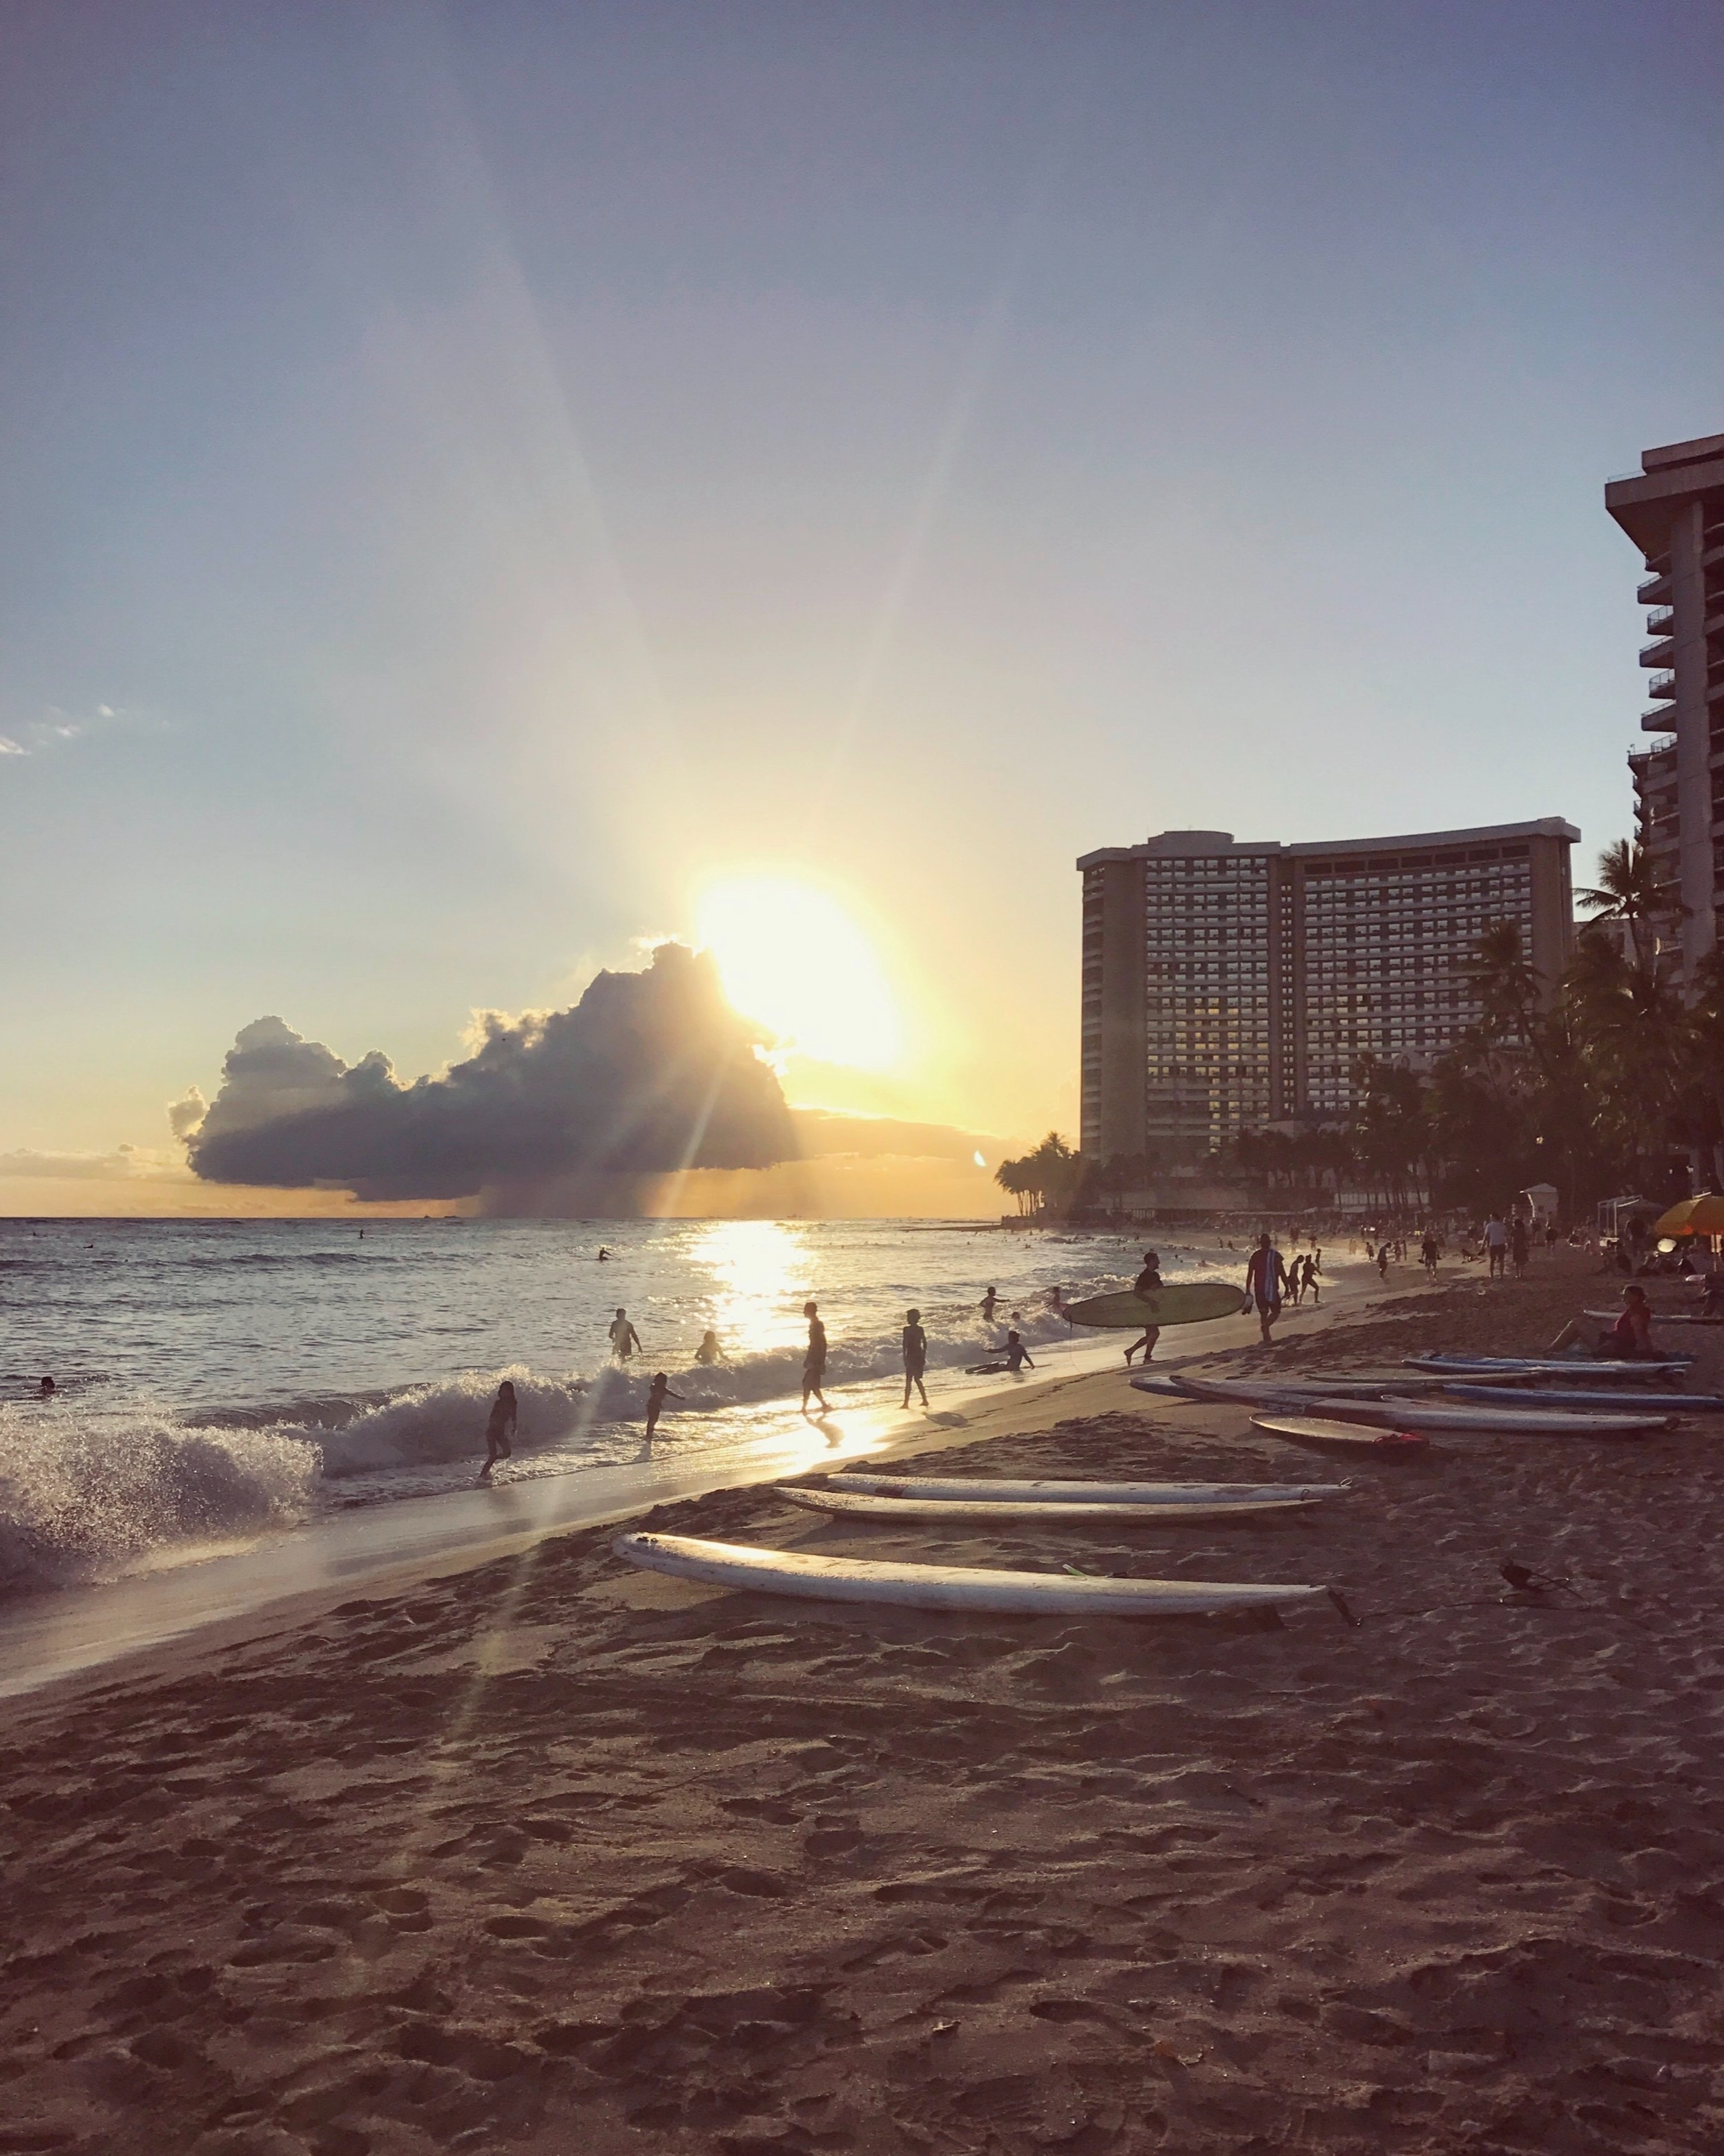 Waikiki Beachi, Oahu, Hawaii